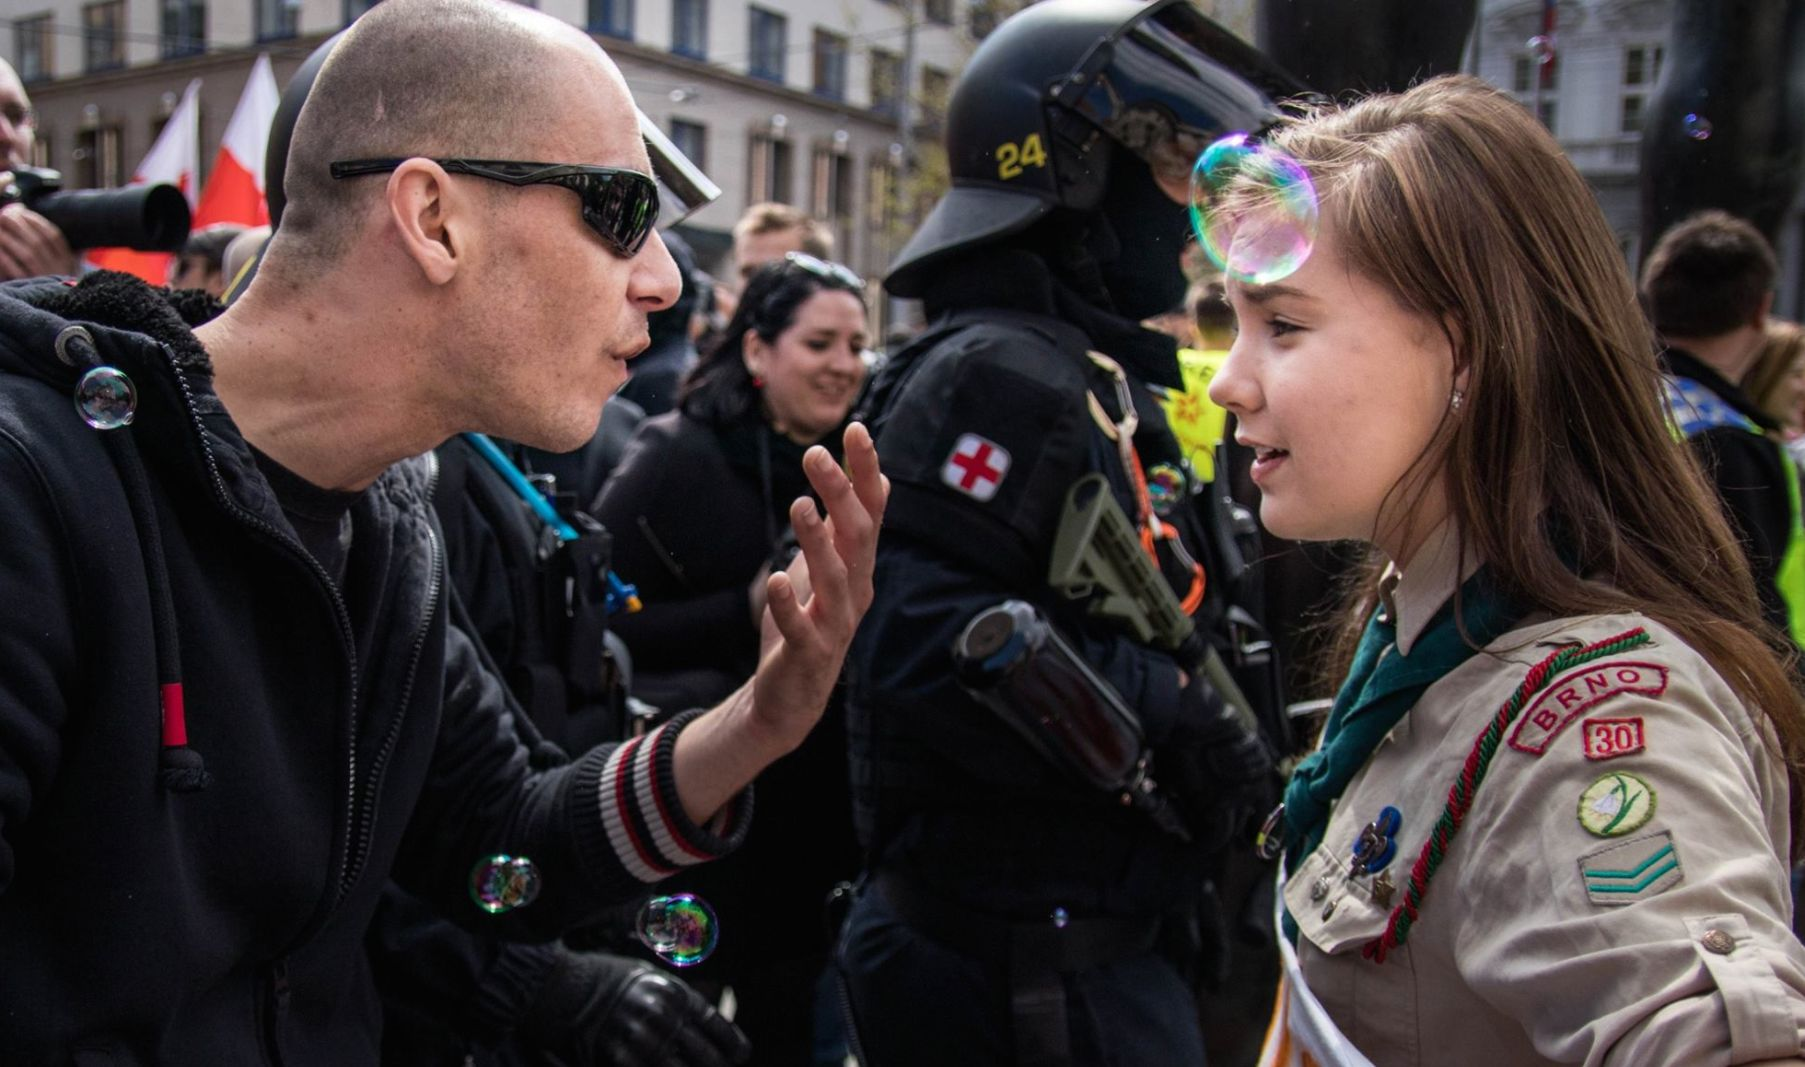 This Girl Scout Smiling In The Face Of A Neo-Nazi Is A Total